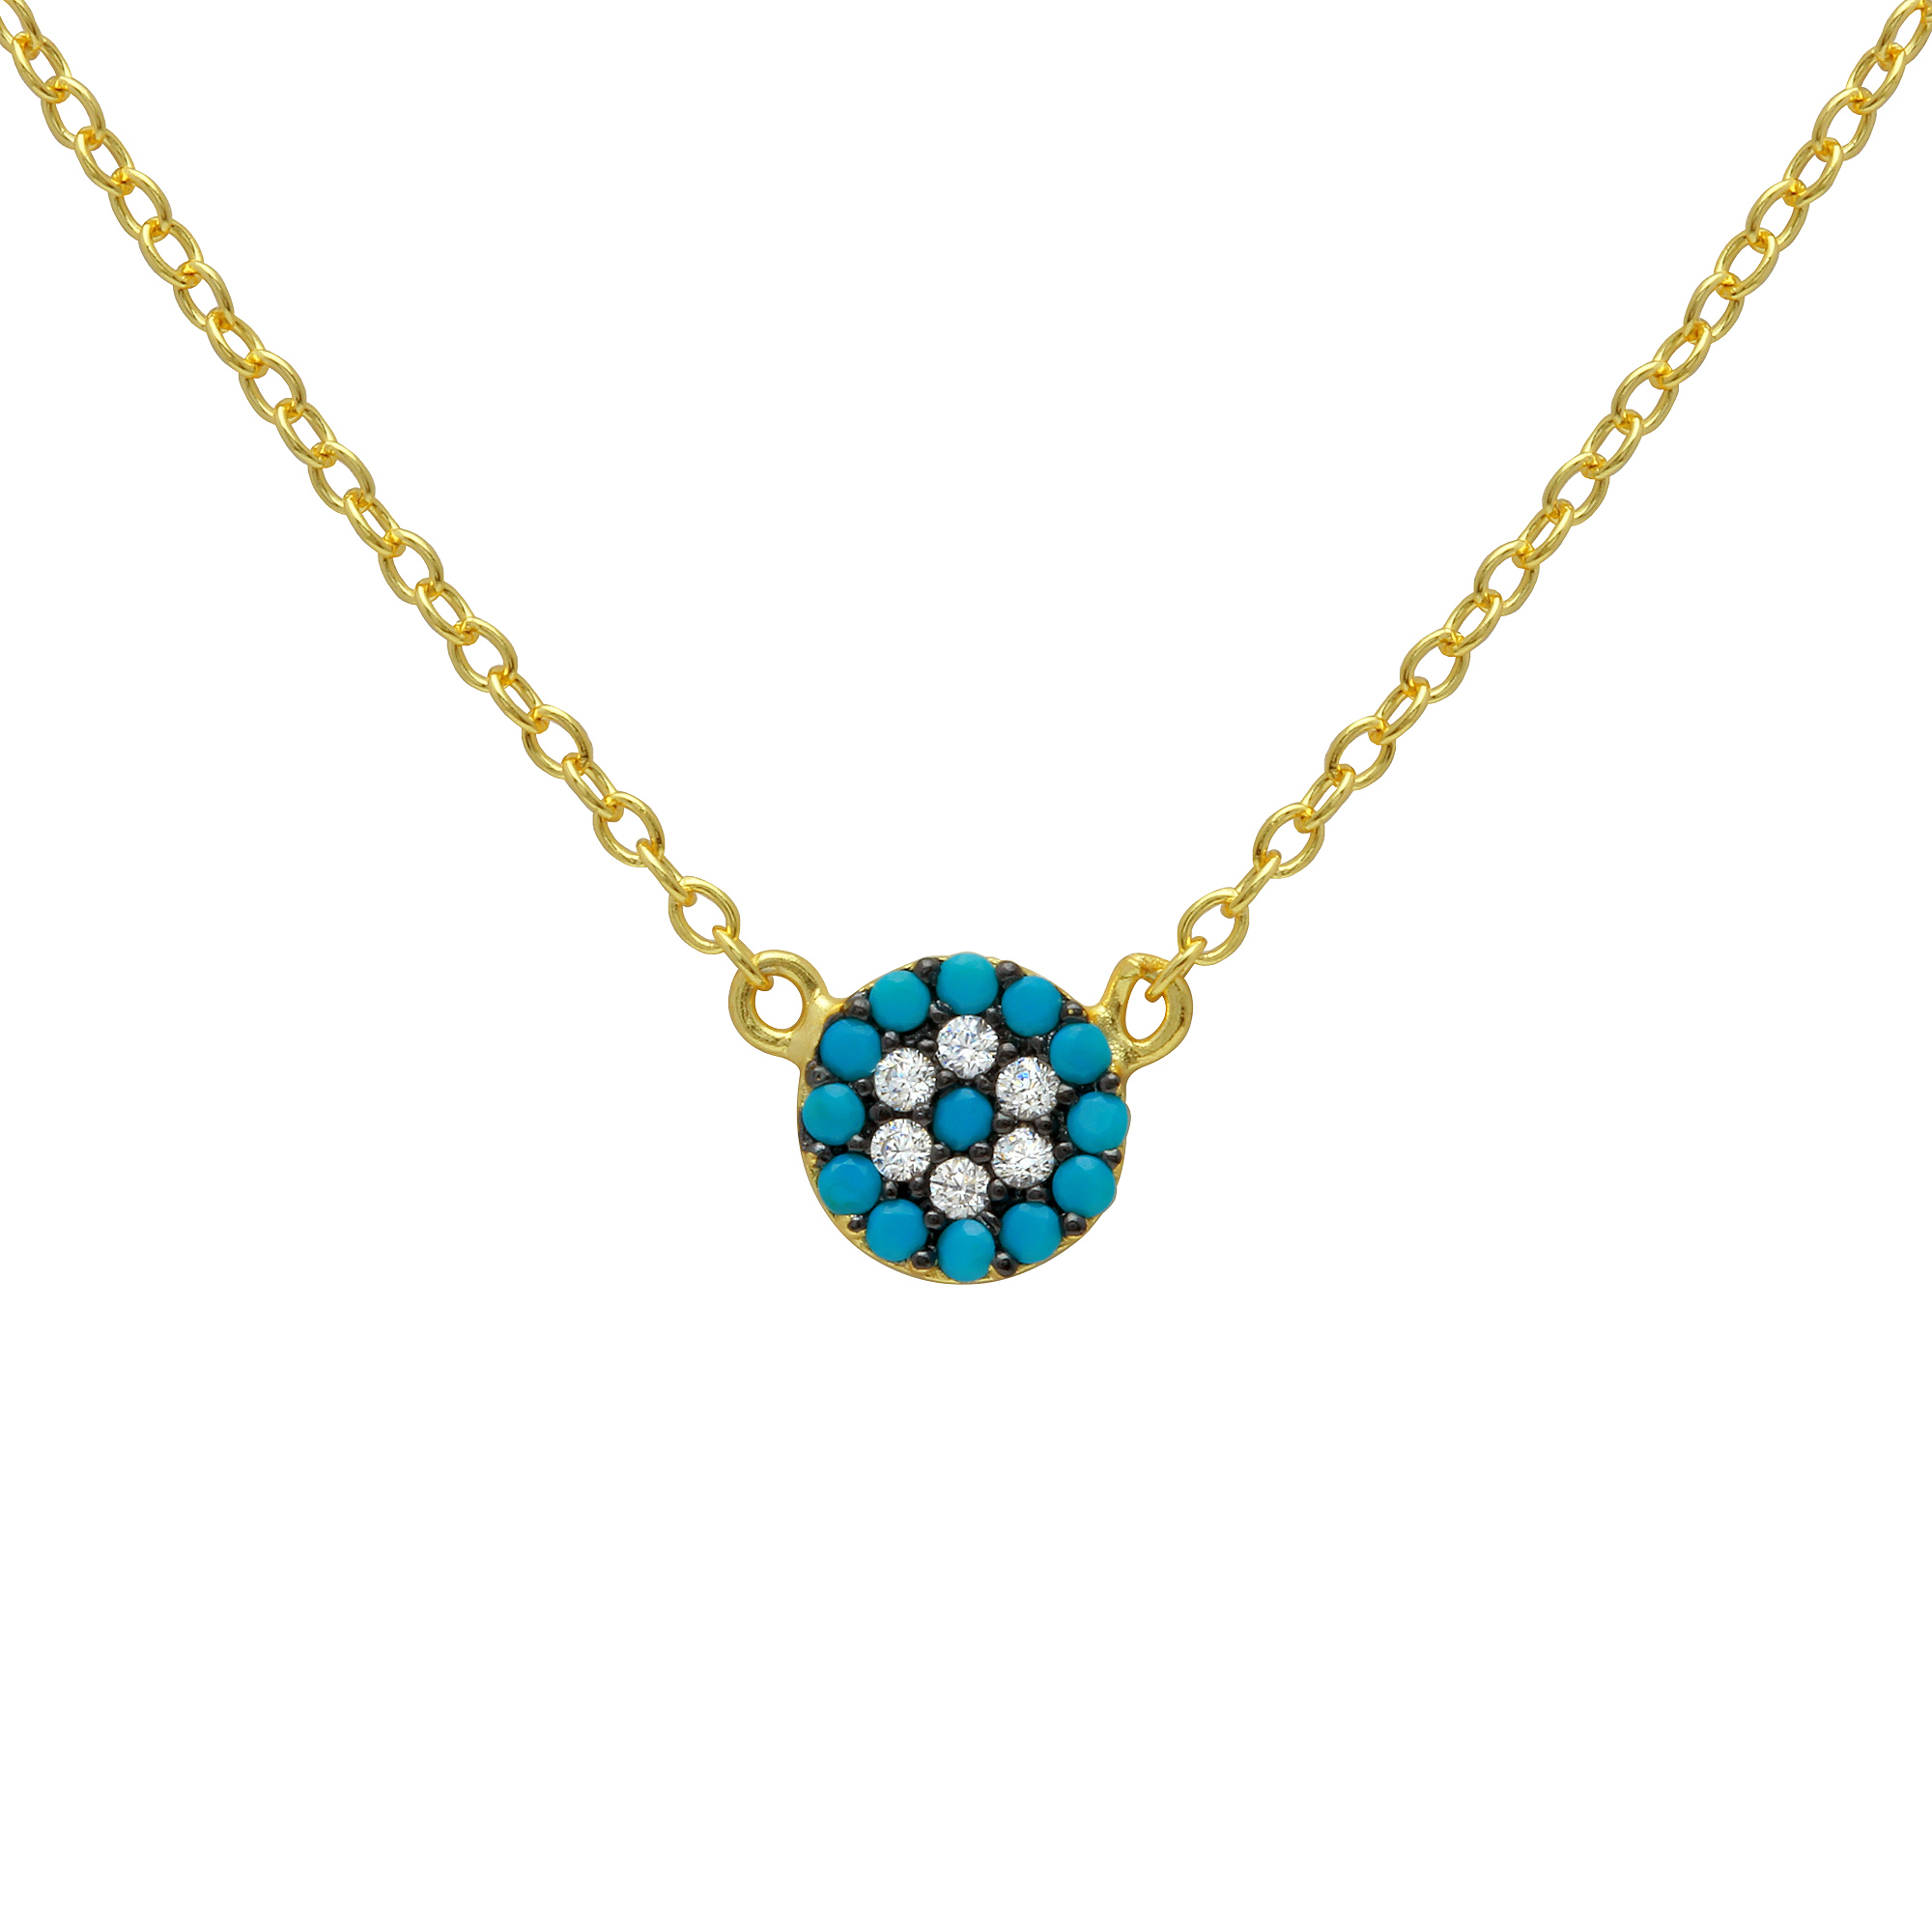 tiny necklaces chick eye necklace greek turquoise online pendant product pink